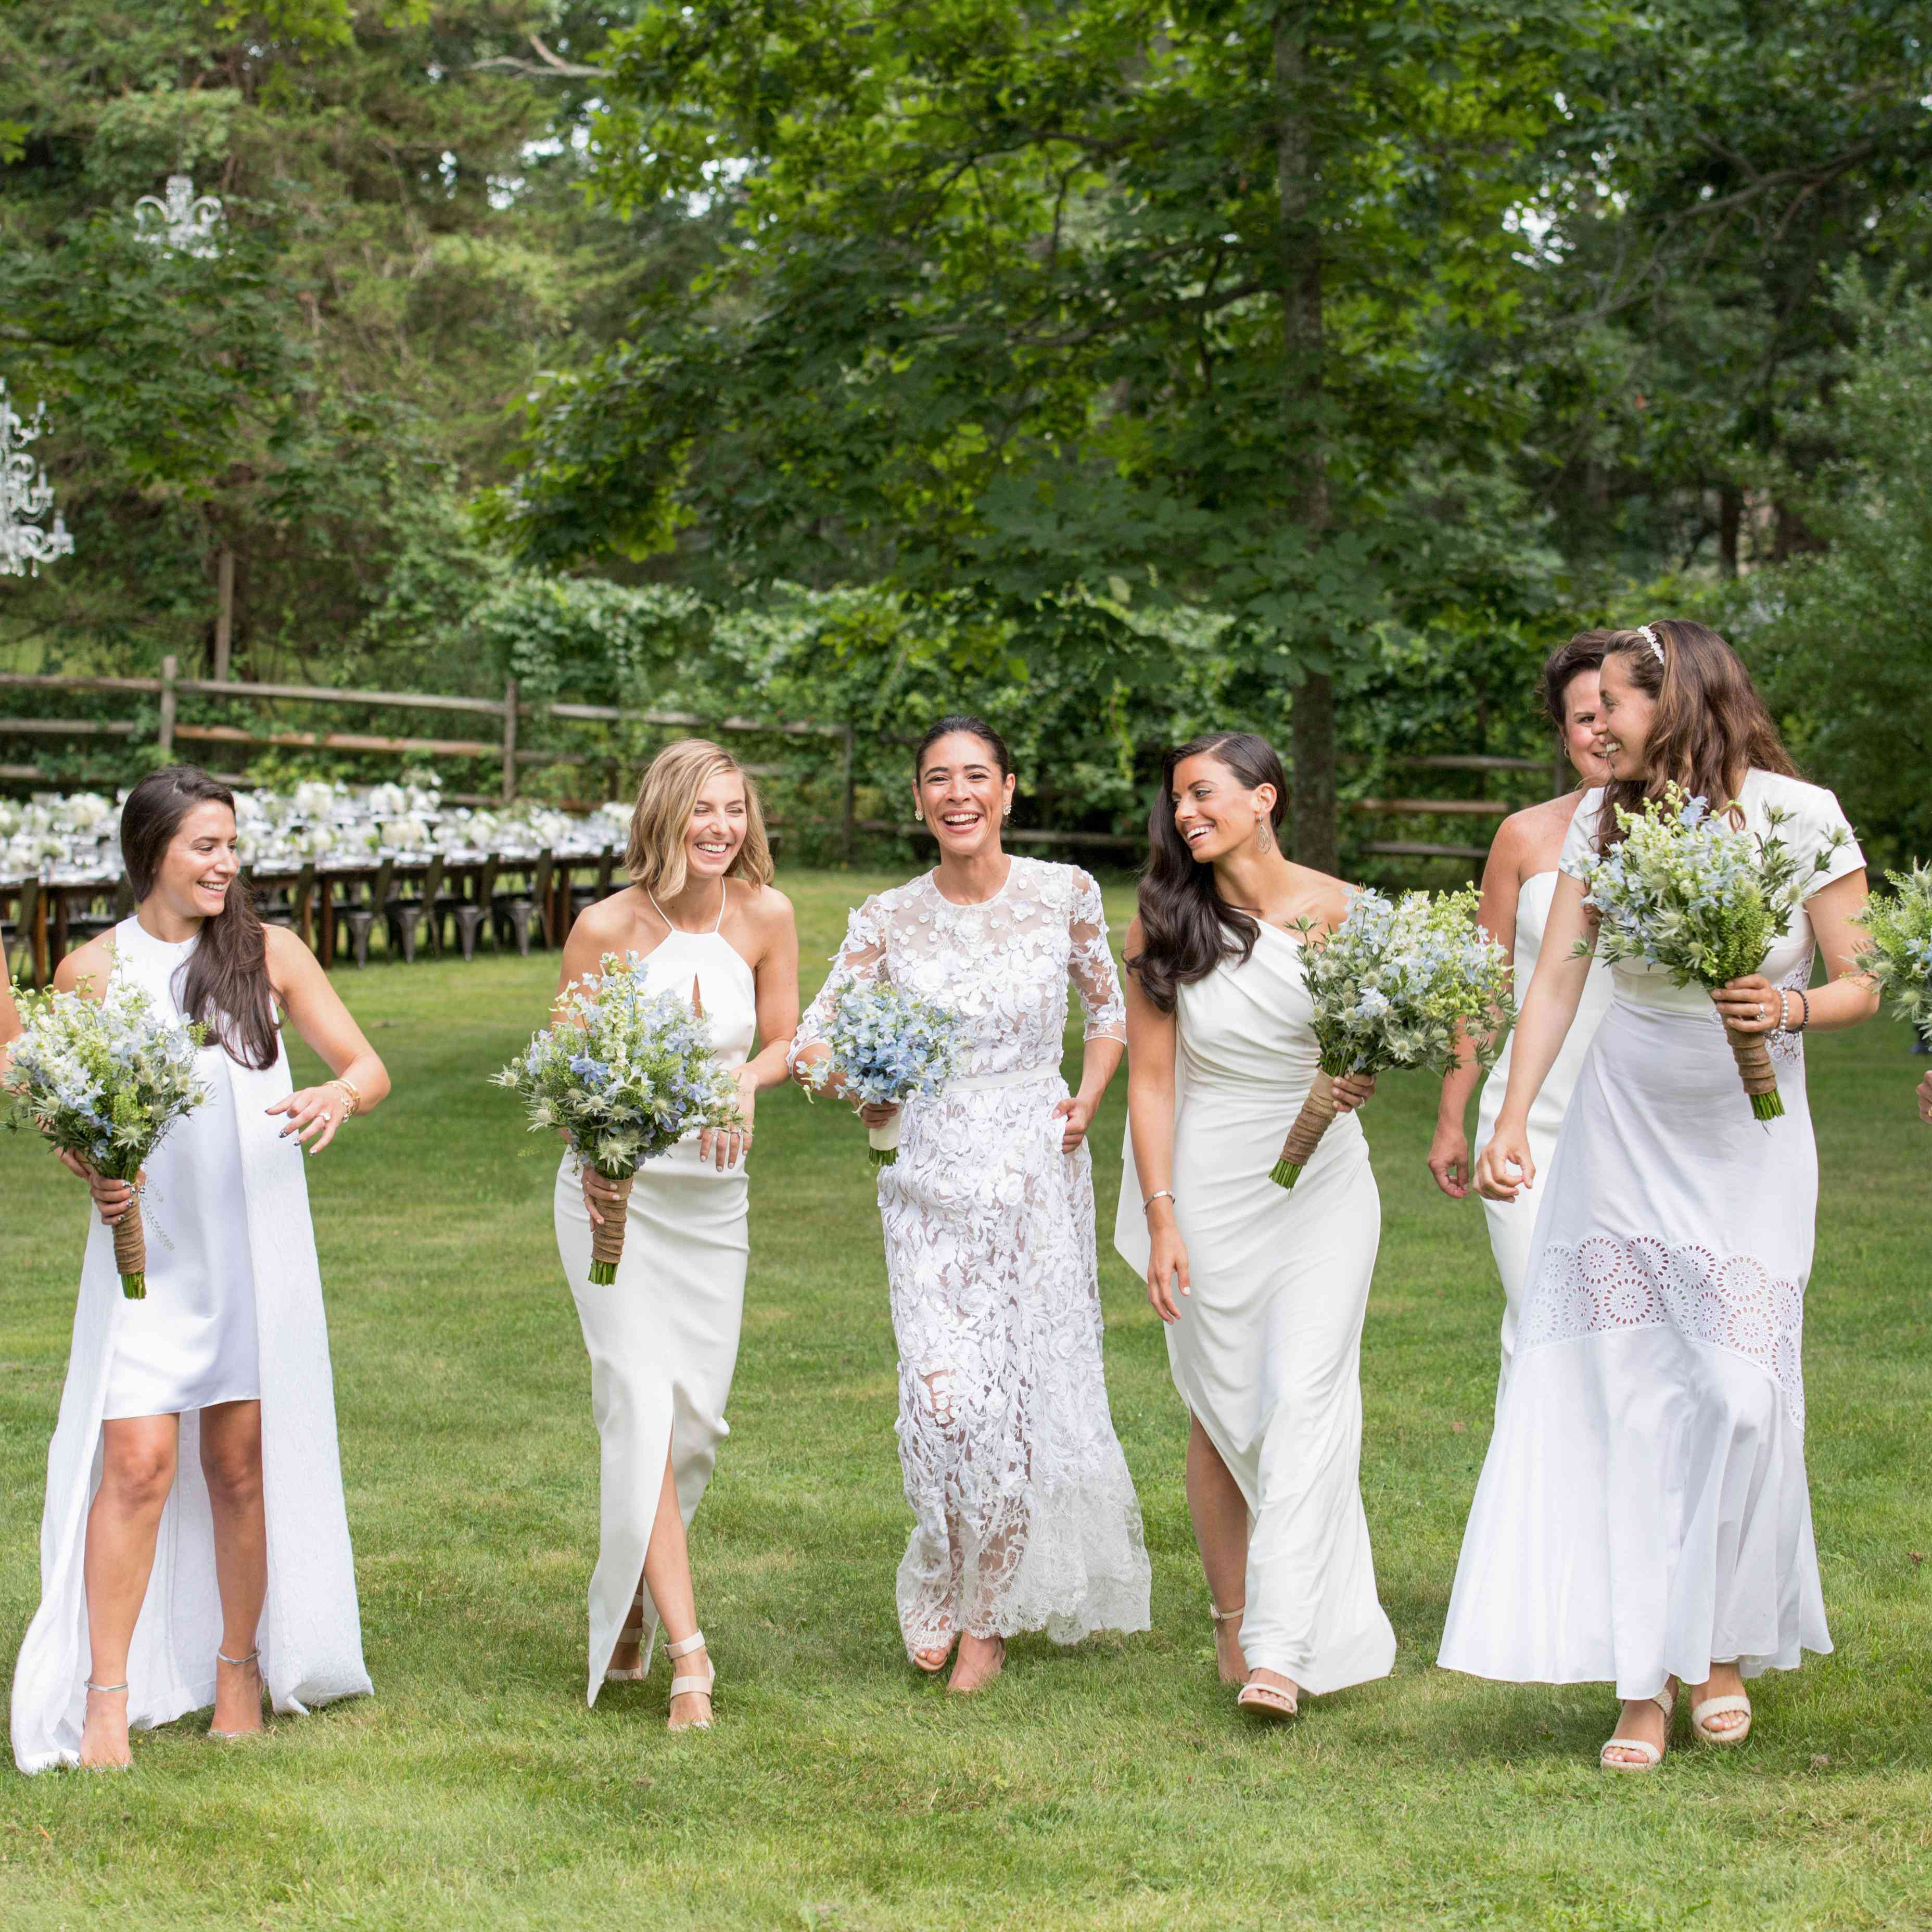 15 White Bridesmaids Dresses That Prove This Trend Is Here